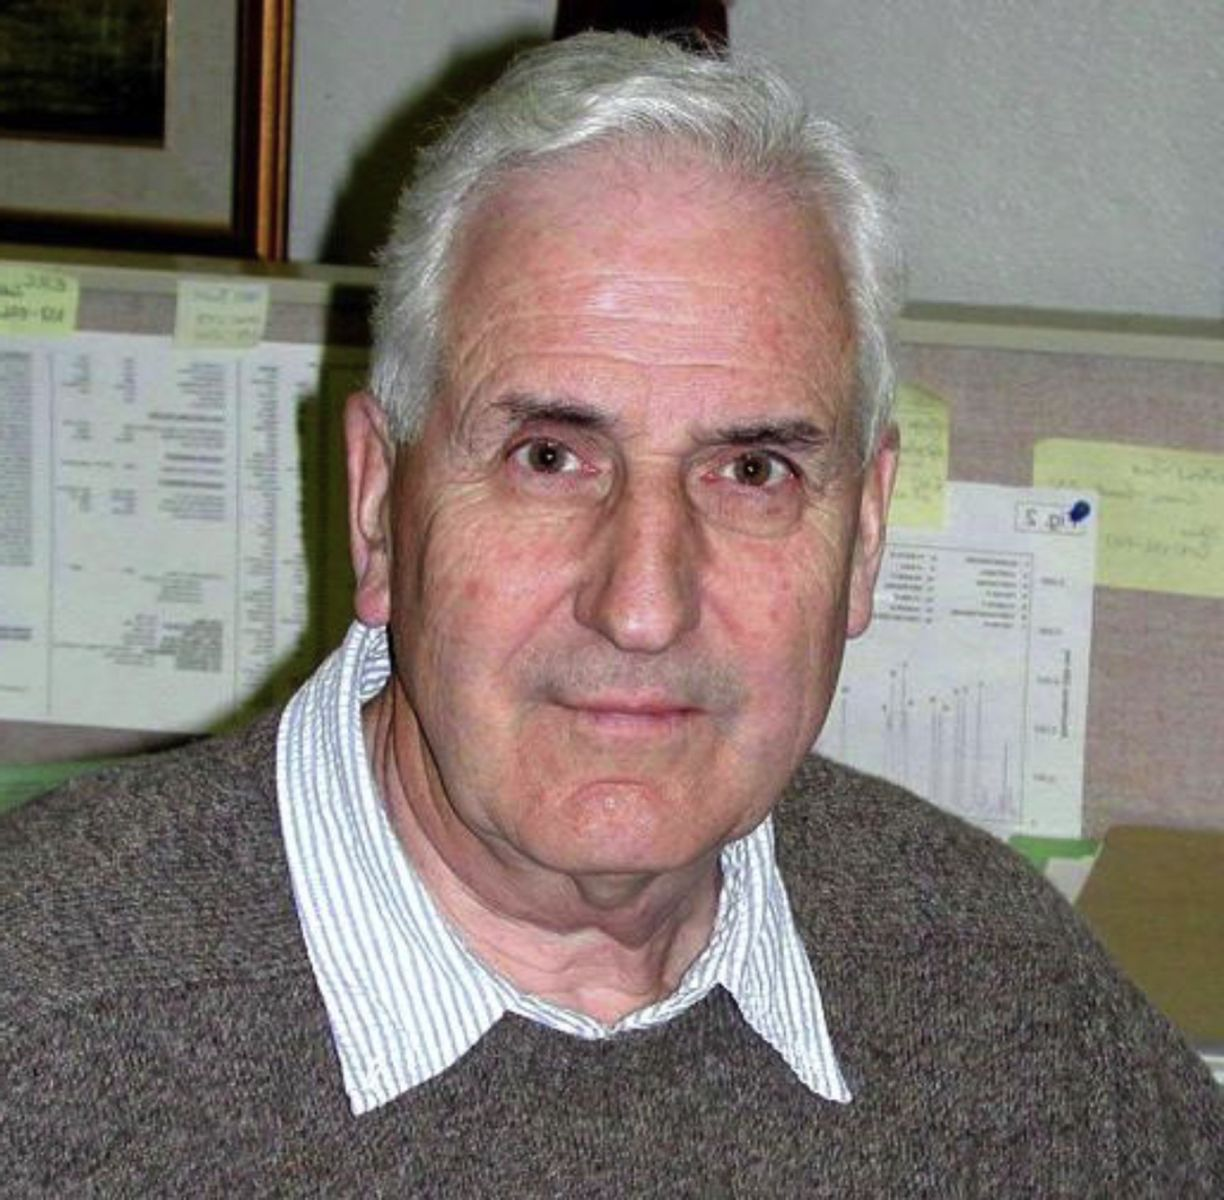 Dr. James Raeside, Professor Emeritus at the University of Guelph's Ontario Veterinary College